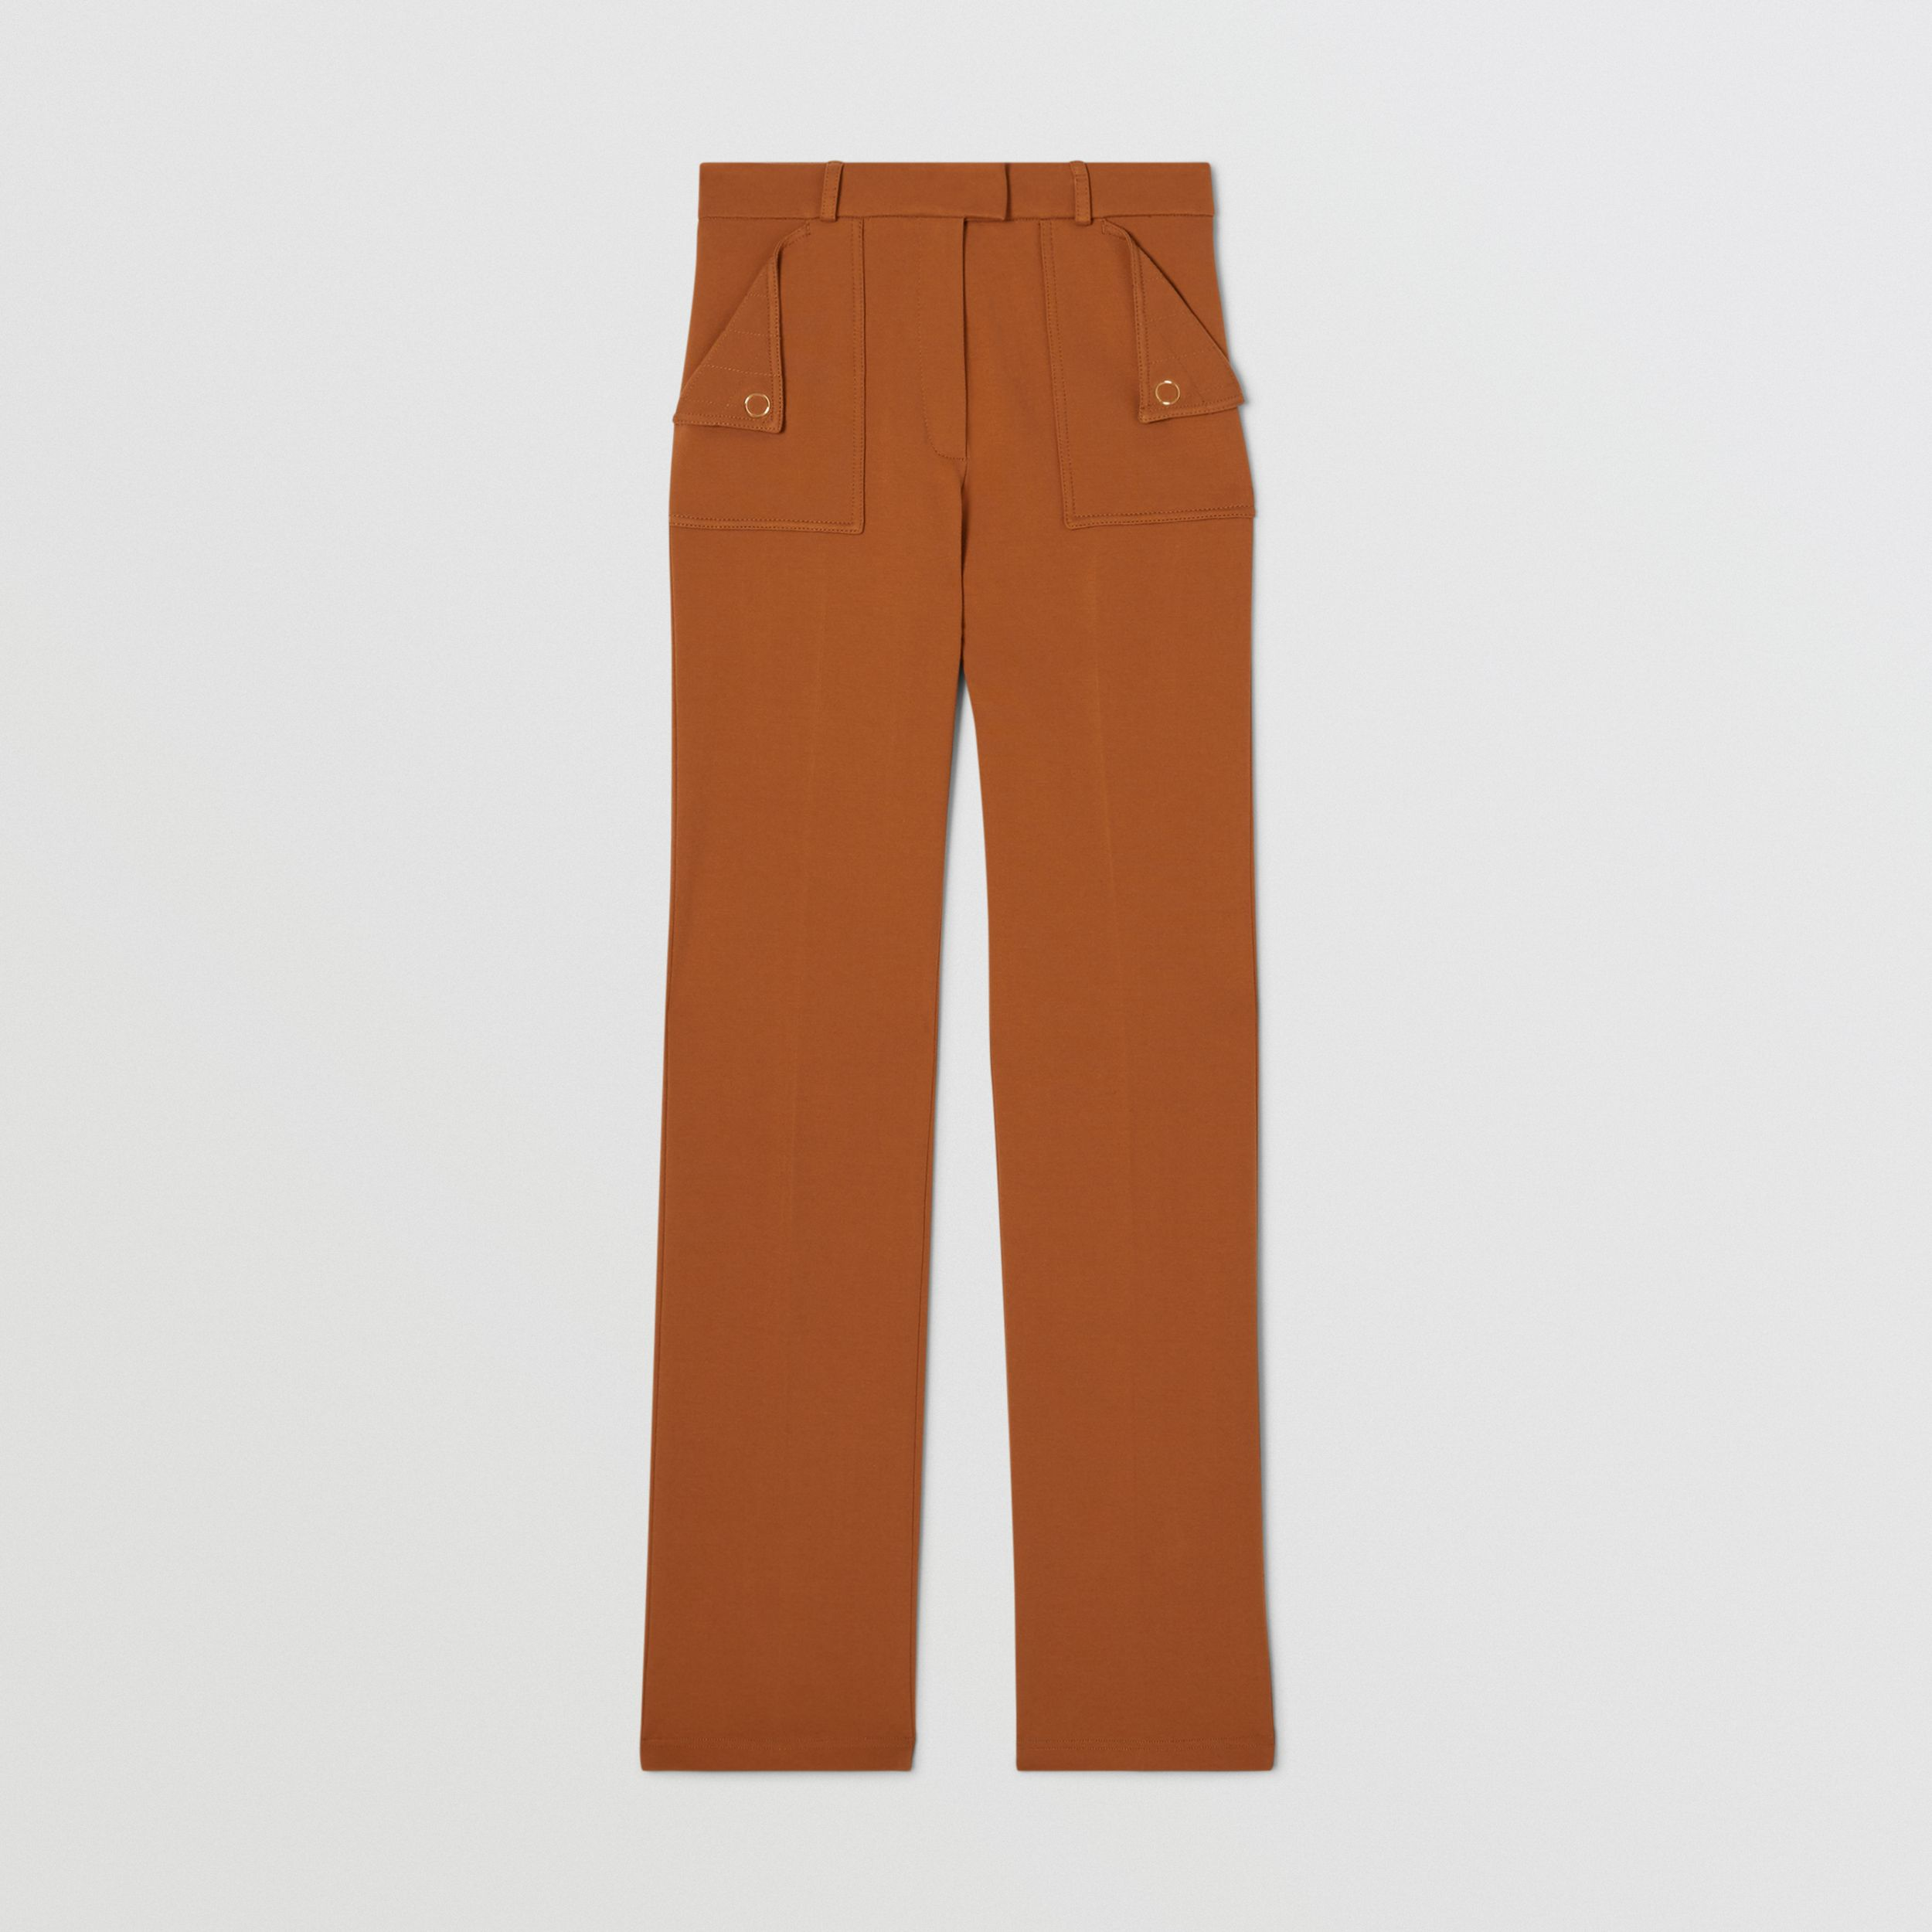 Pocket Detail Jersey Tailored Trousers in Biscuit - Women | Burberry - 4